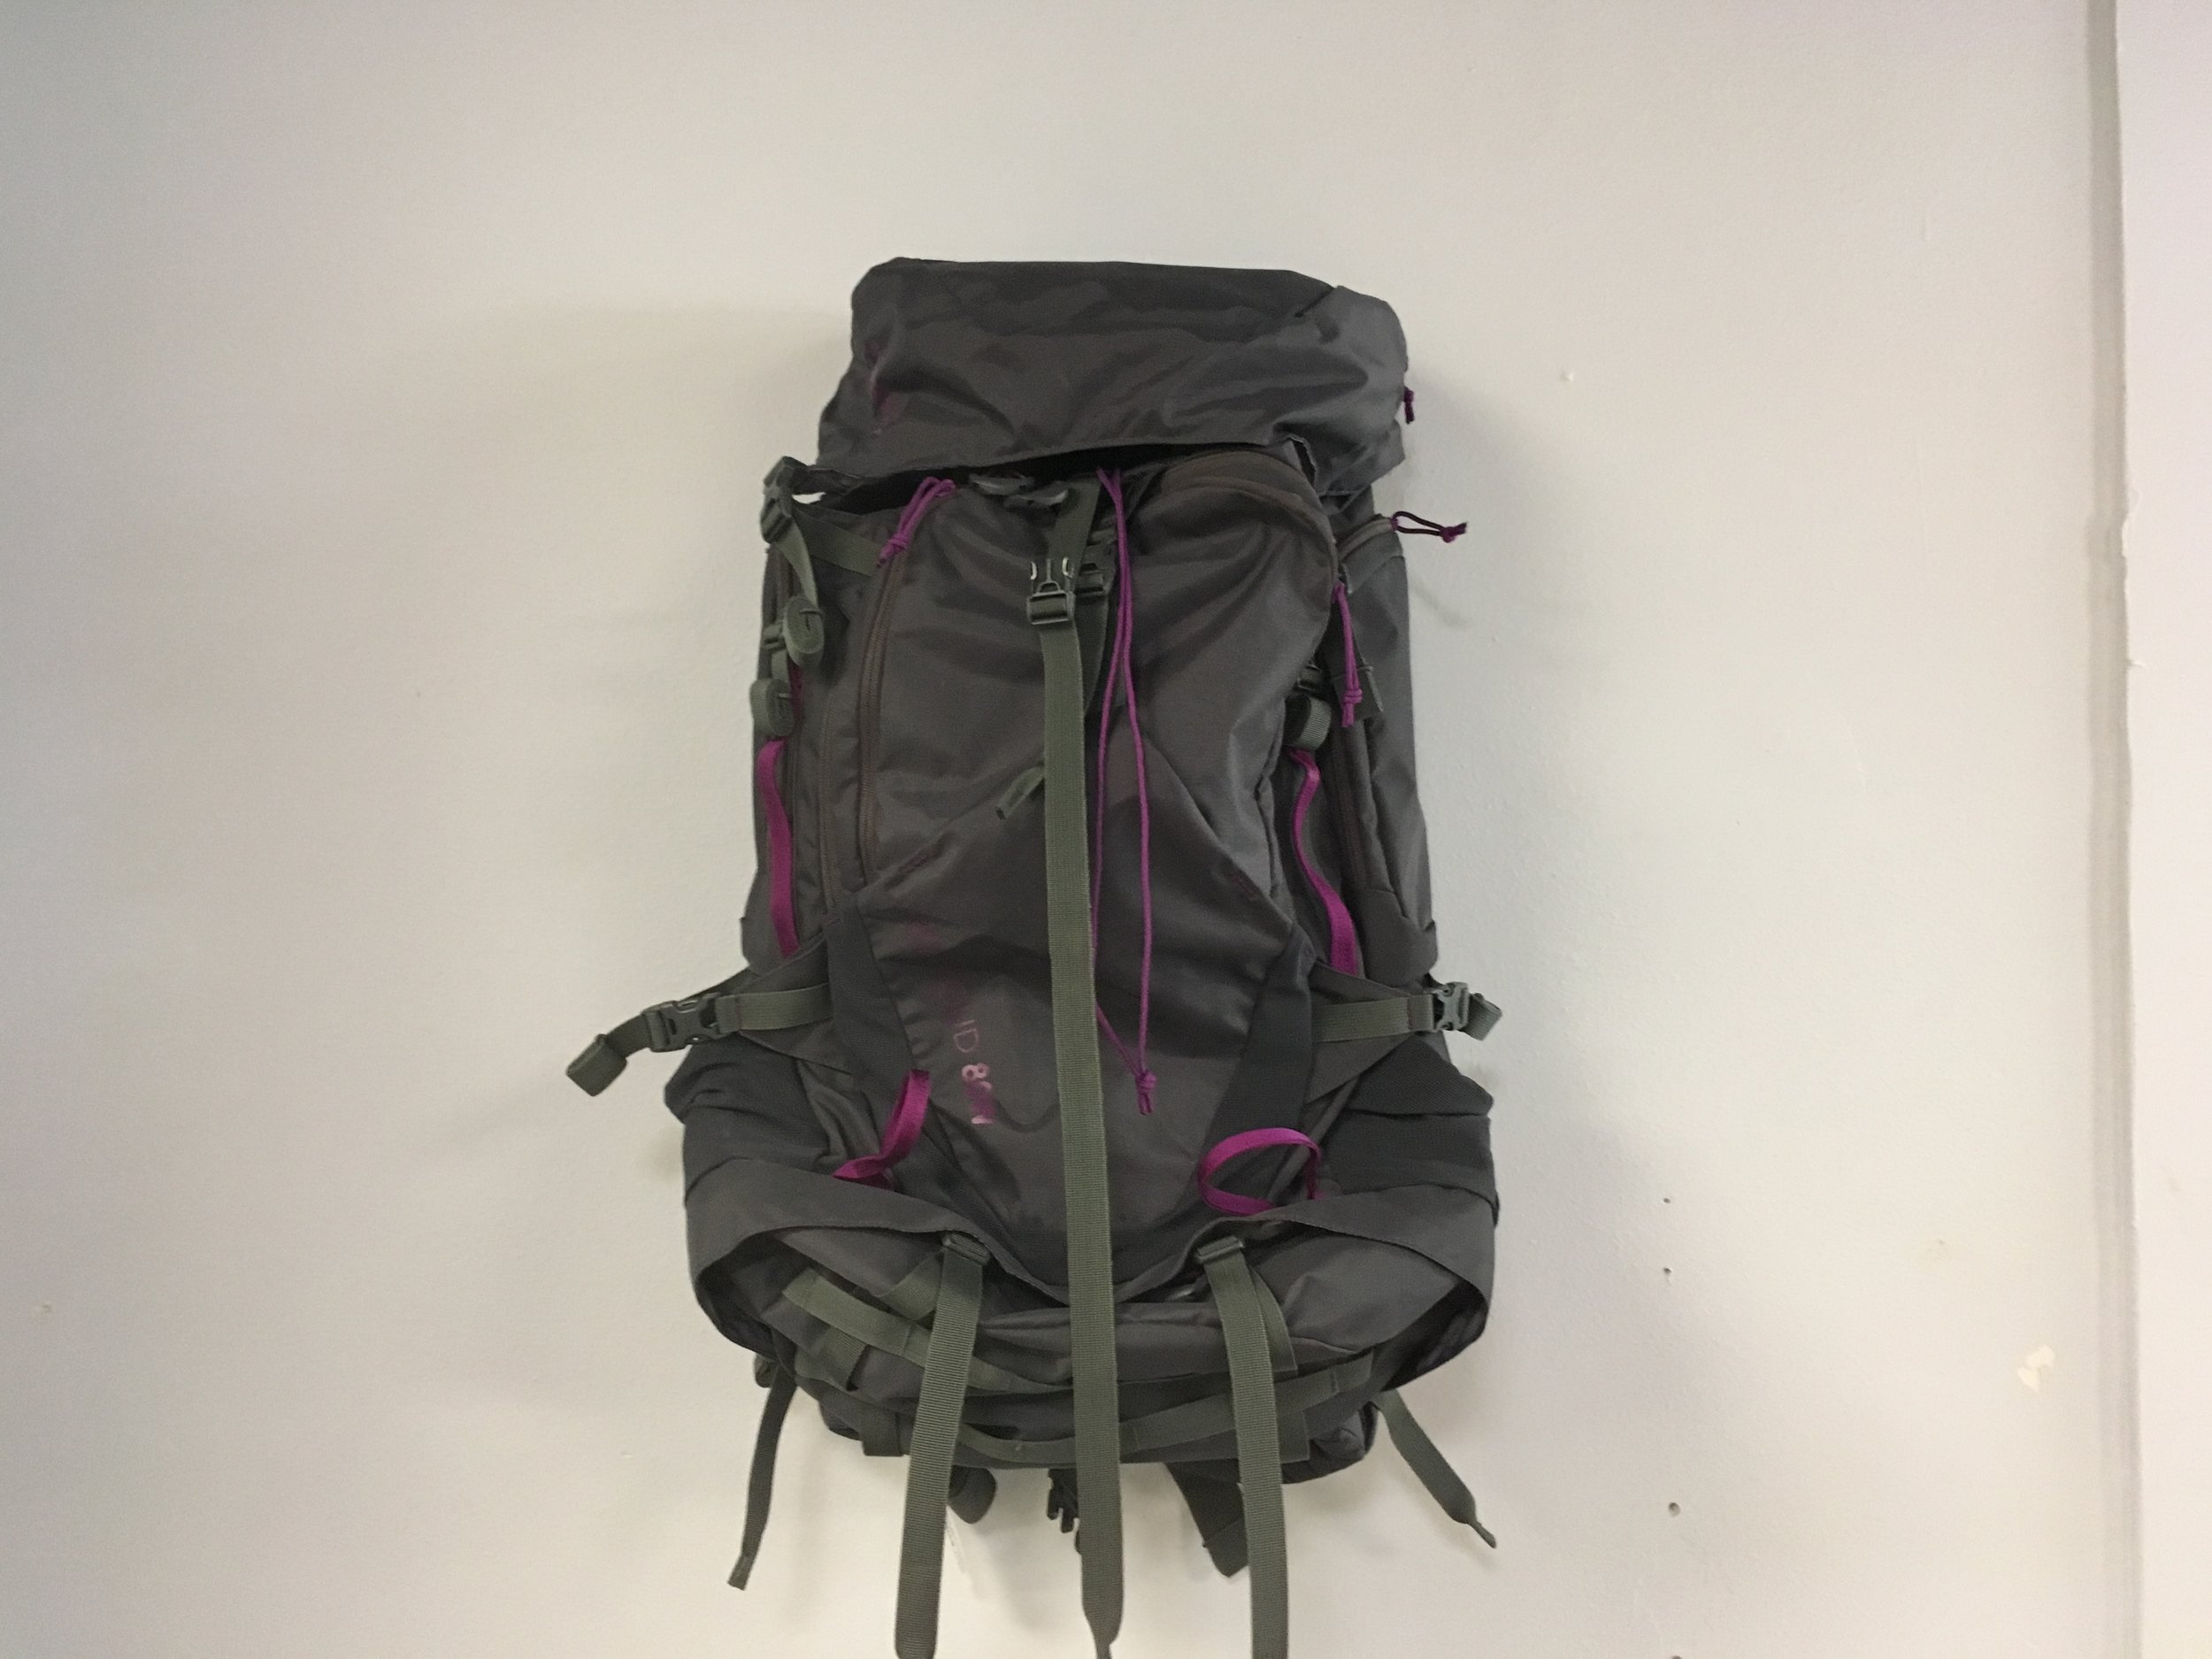 Kelty's Red Cloud 80W is an excellent balance of size, performance and price, making the pack perfect for multi-day and extended backpacking trips. The Red Cloud retails for $220 but we got you covered for $119!